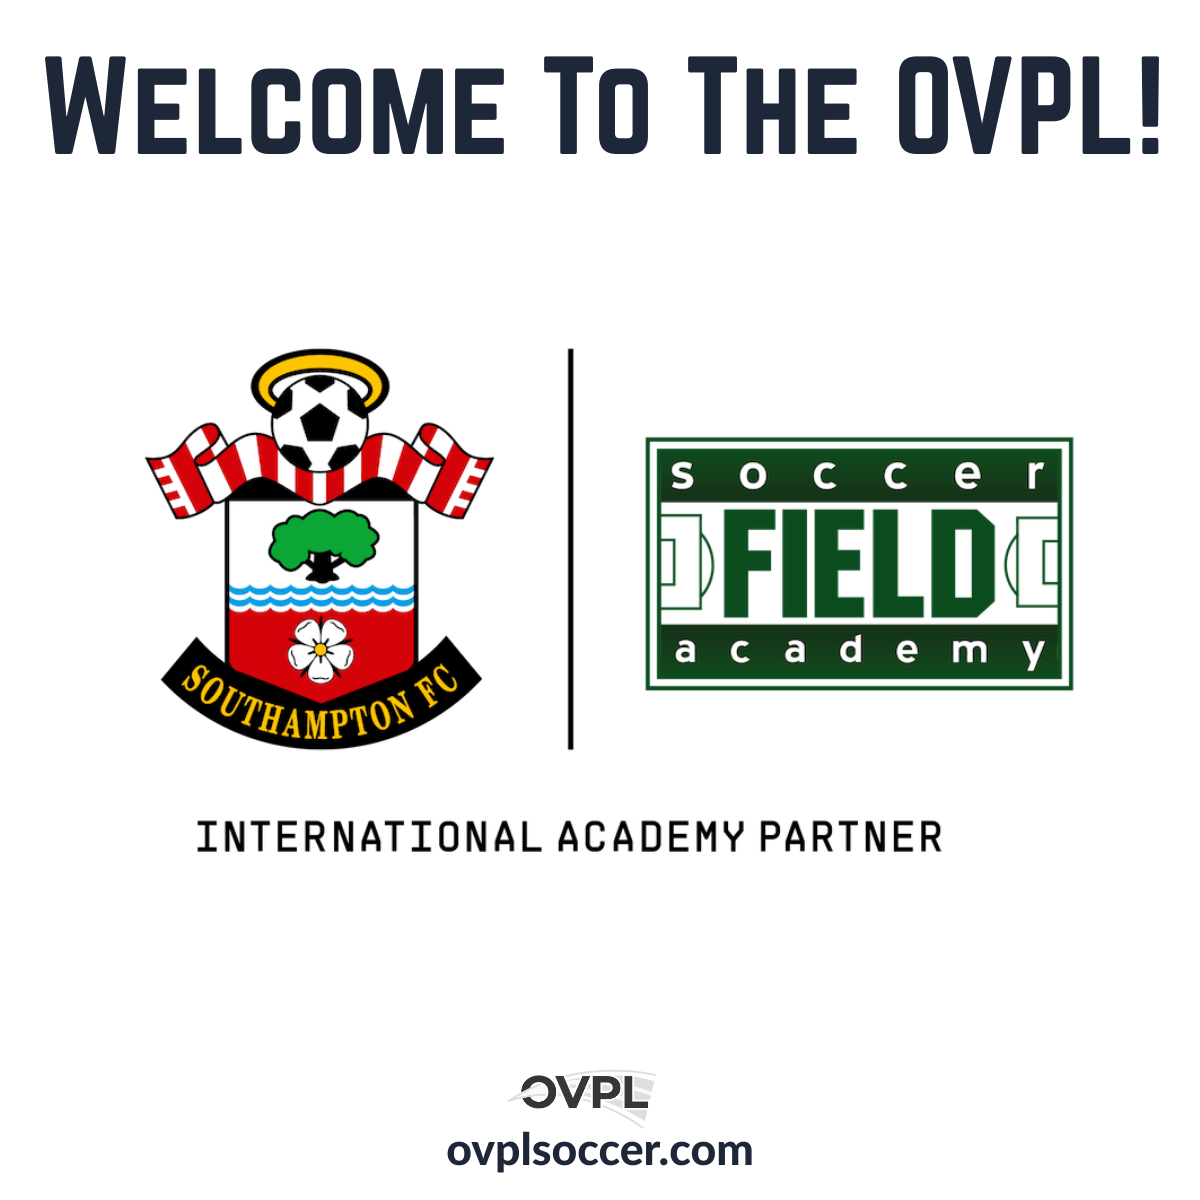 Soccer Field Academy Joins OVPL for 2021!